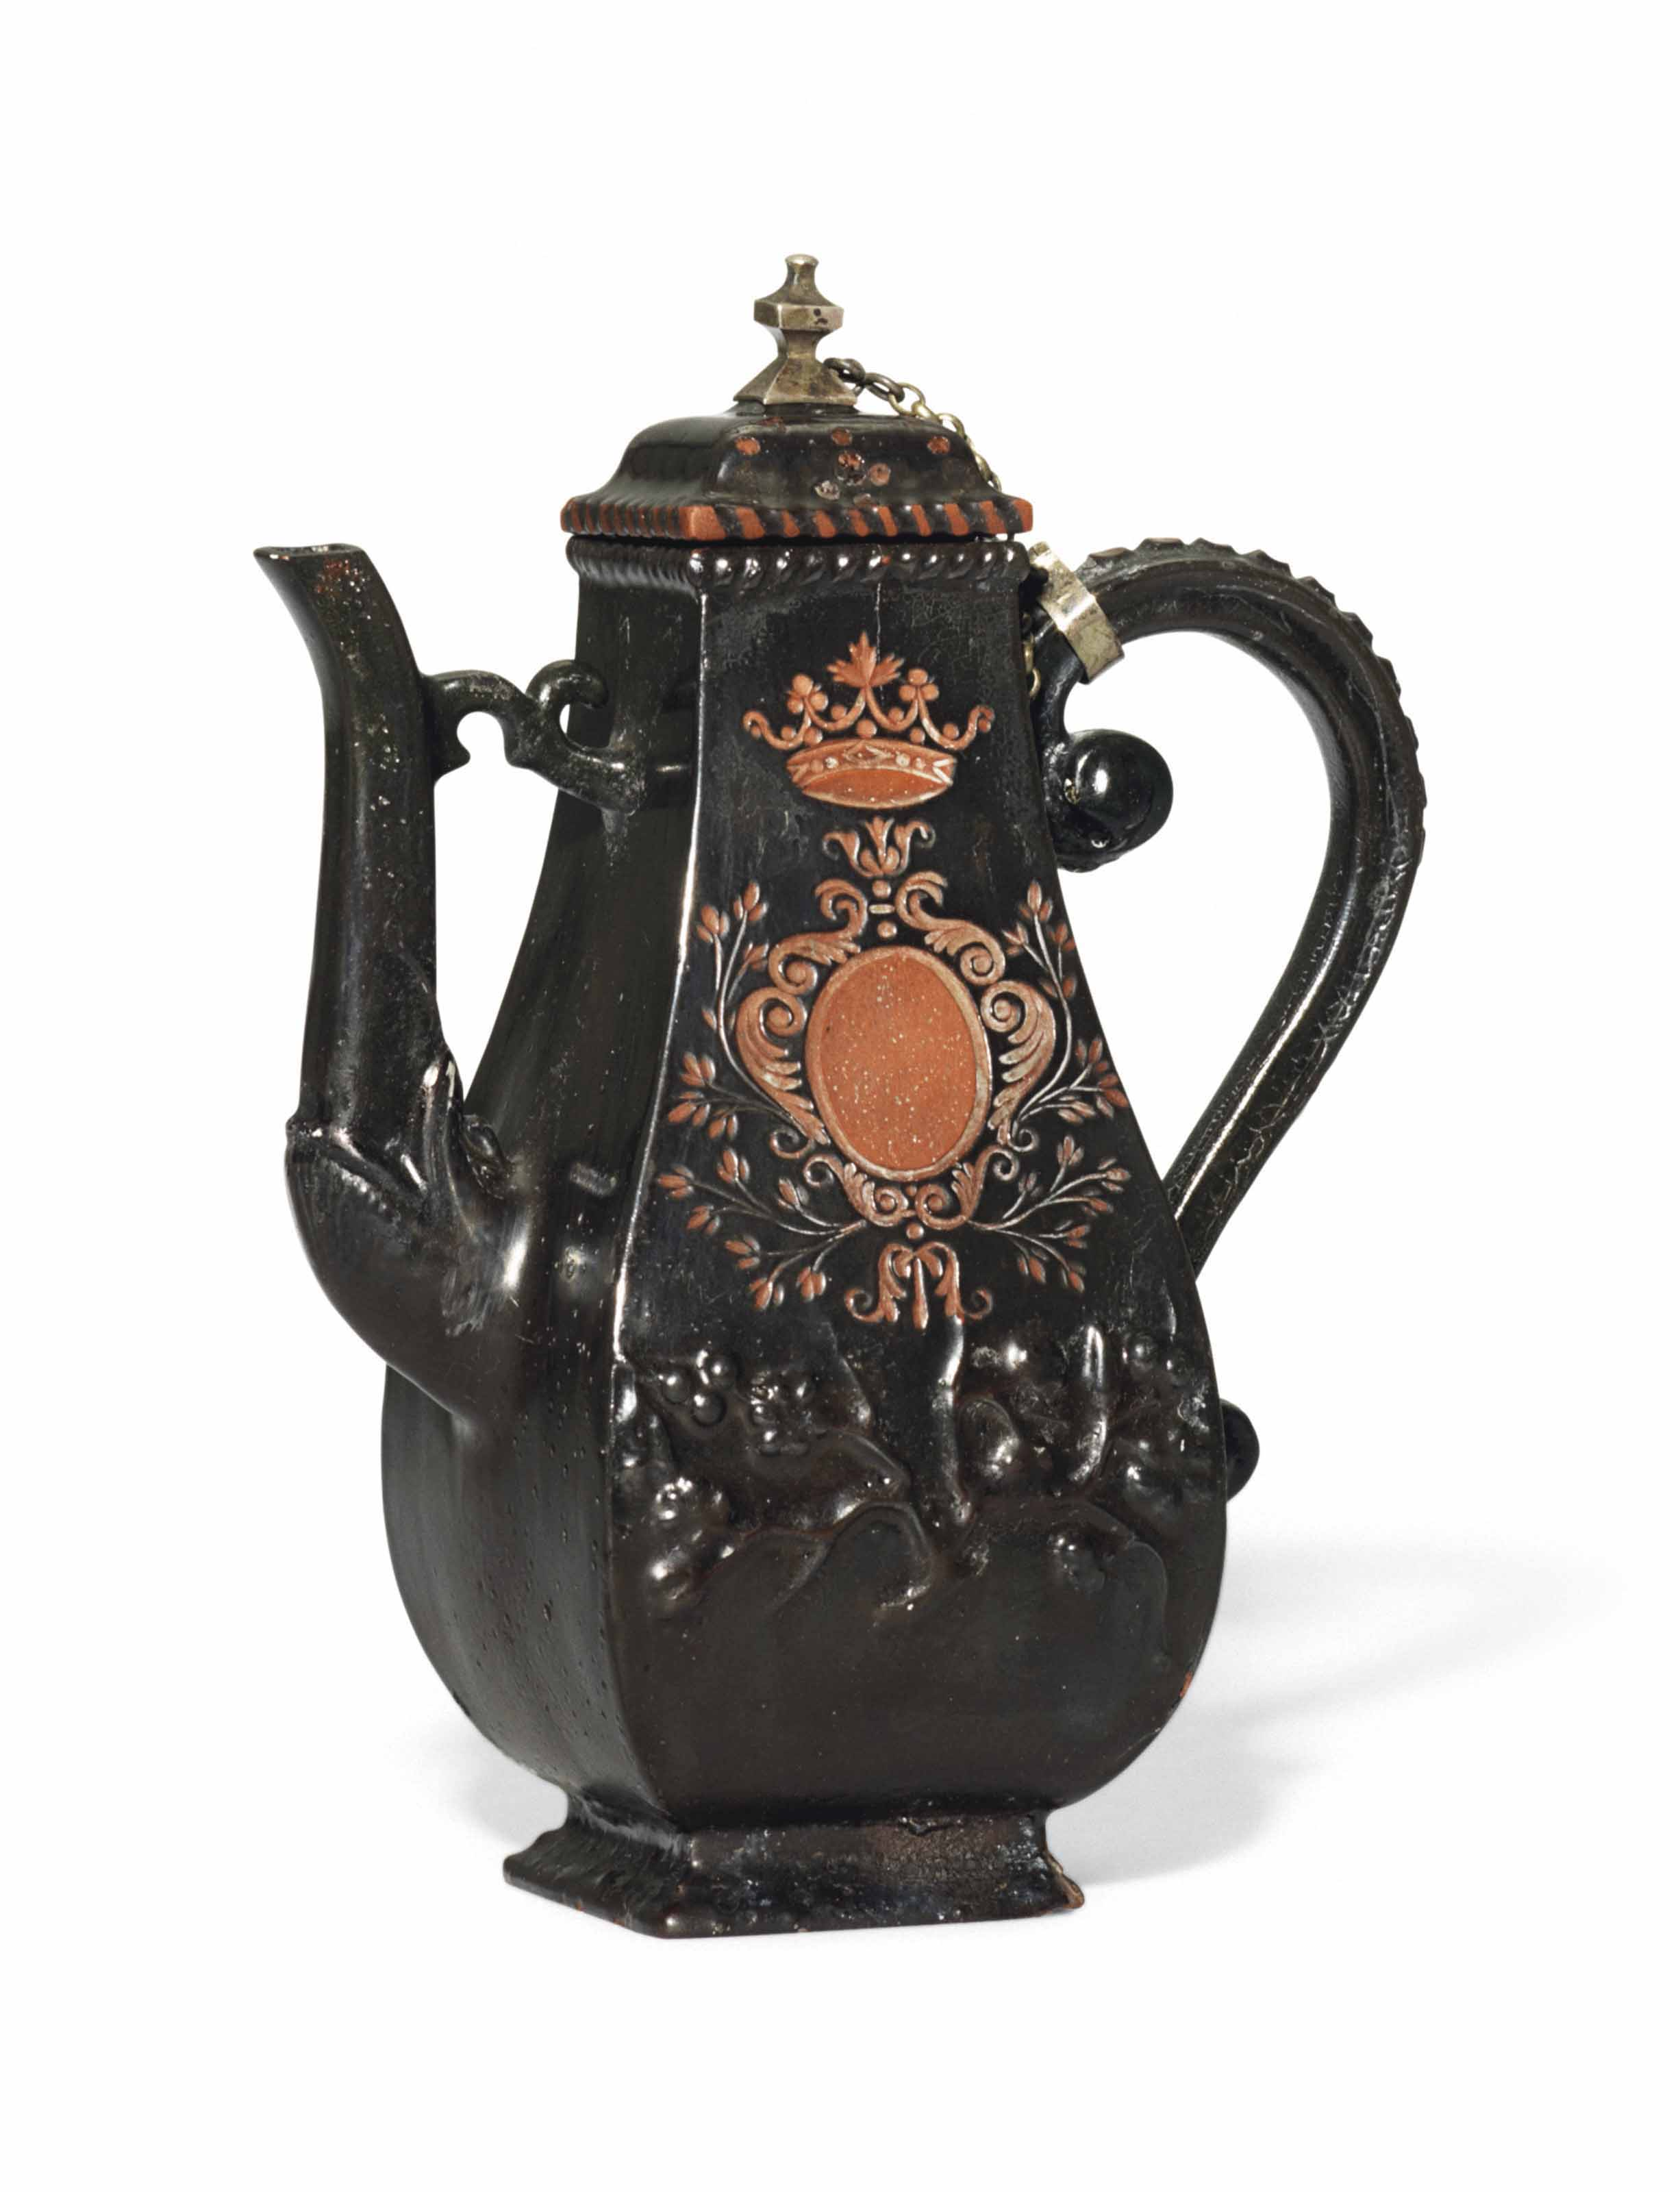 A BÖTTGER BLACK-GLAZED RED STONEWARE COFFEE-POT AND COVER